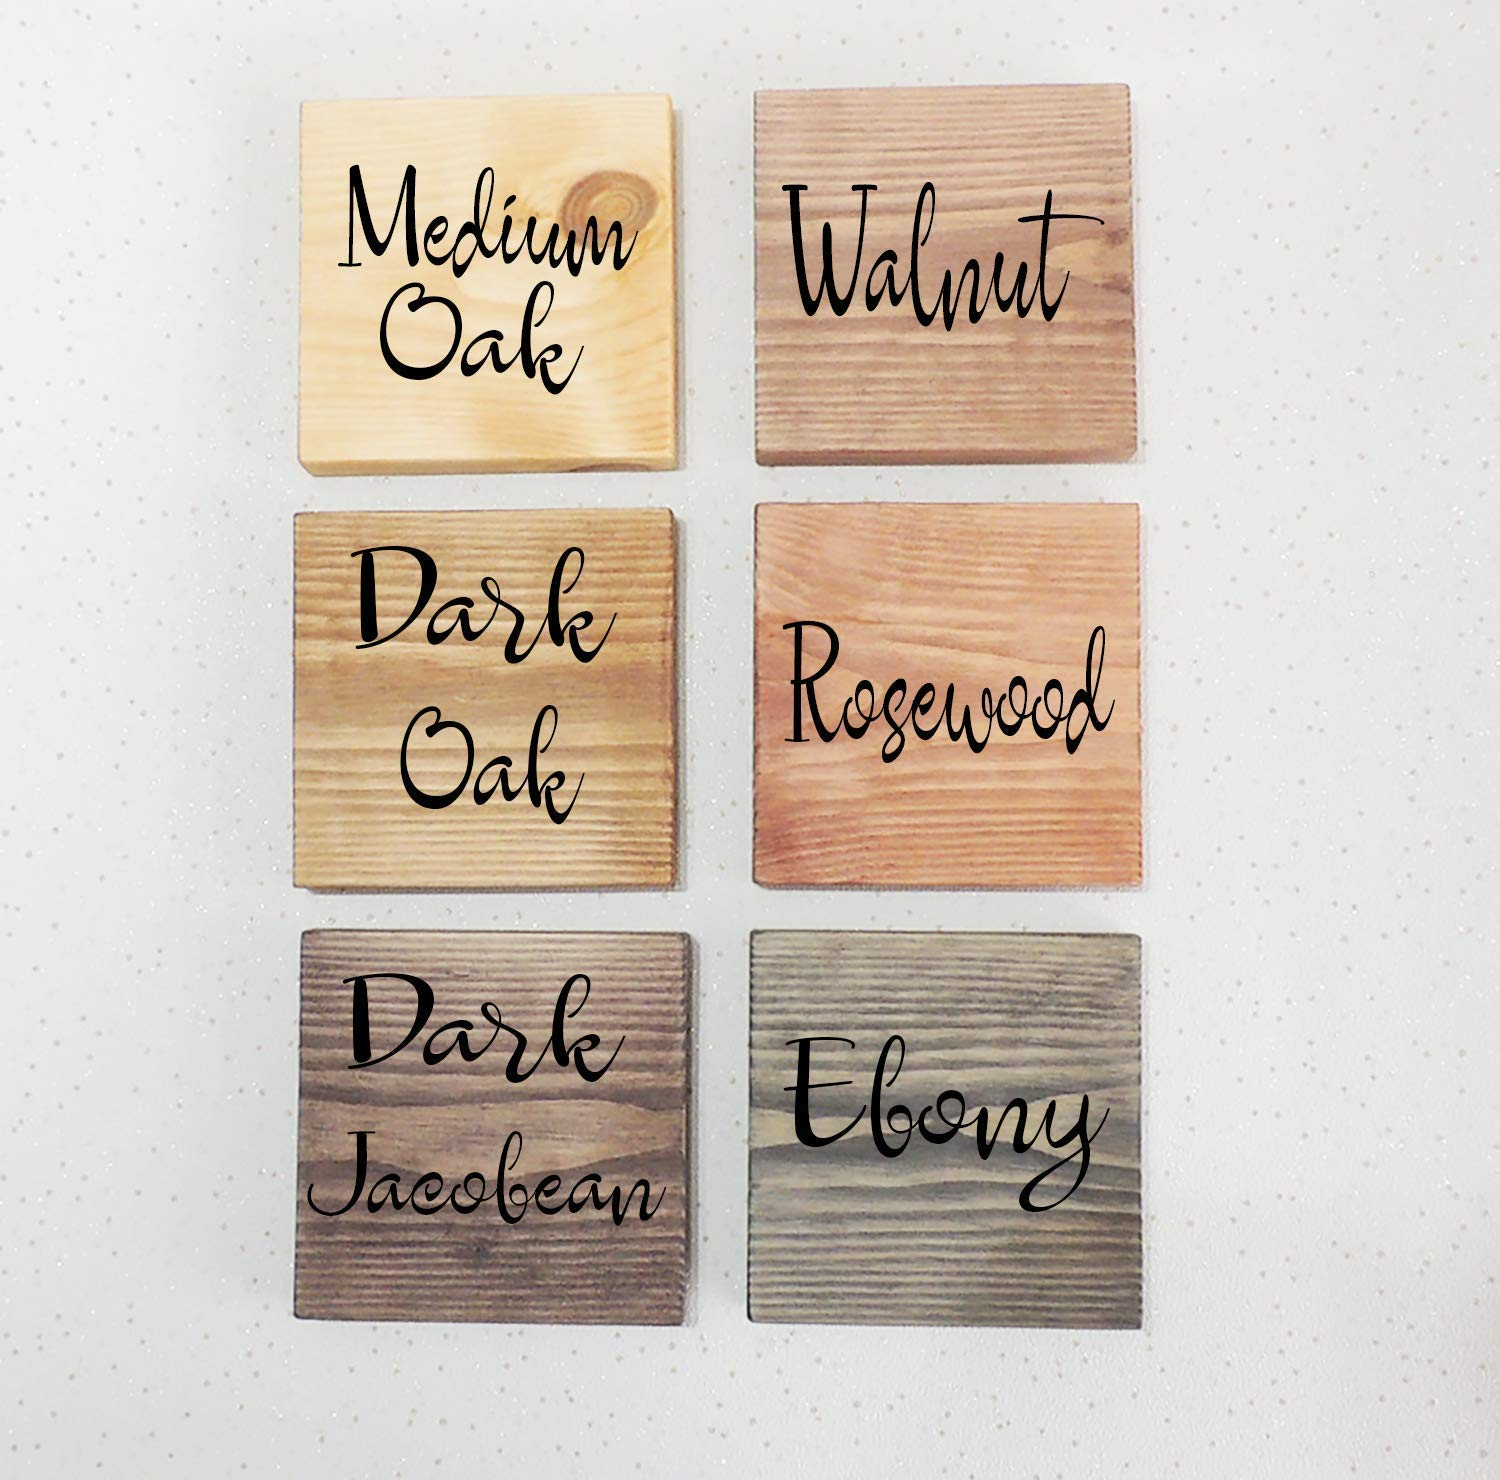 wedding table decor card blocks guest table names seating plan 10 wedding place card holders wooden wedding decor table name holders